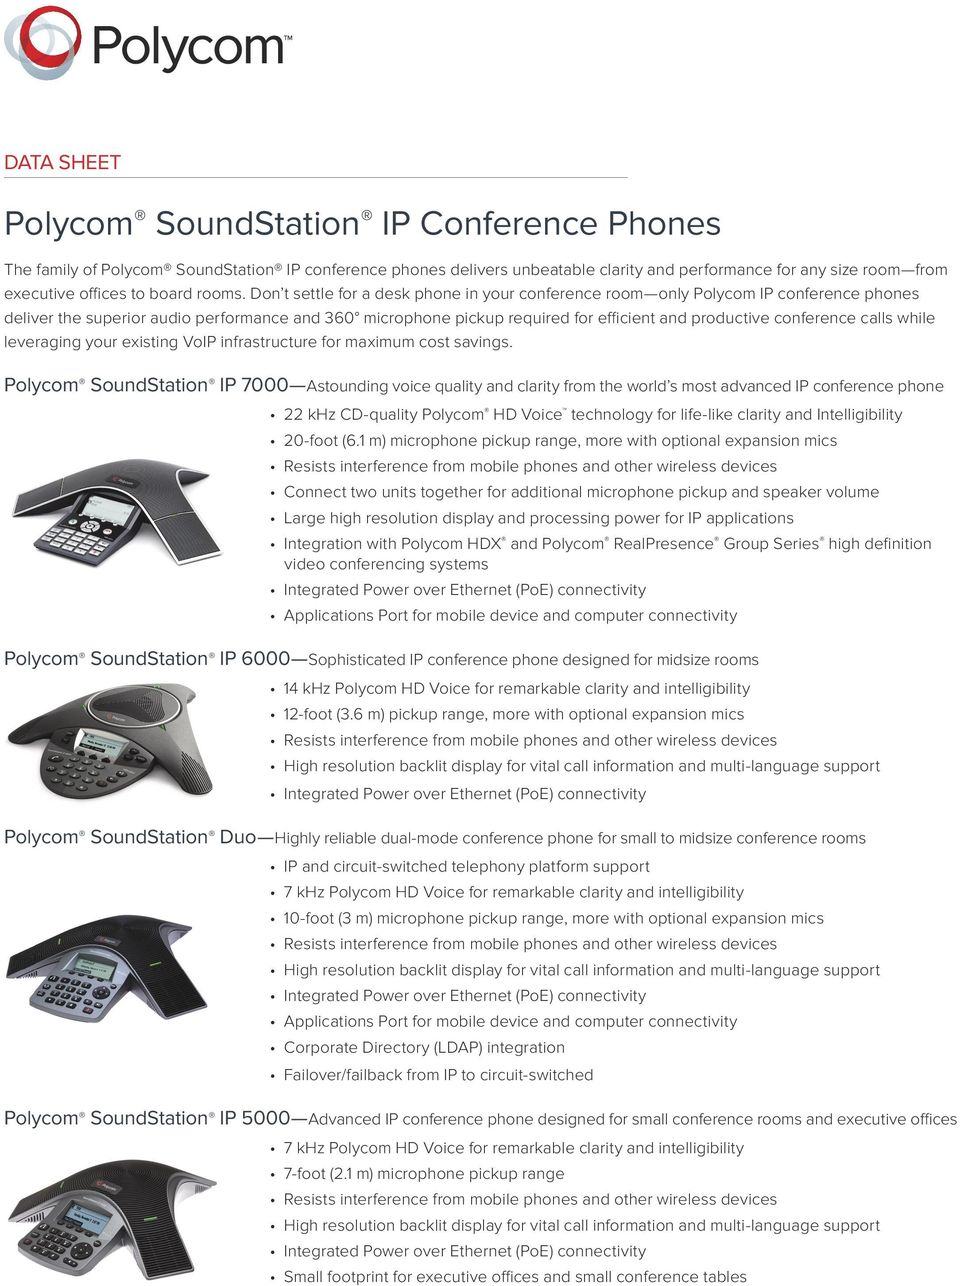 Don t settle for a desk phone in your conference room only Polycom IP conference phones deliver the superior audio performance and 360 microphone pickup required for efficient and productive